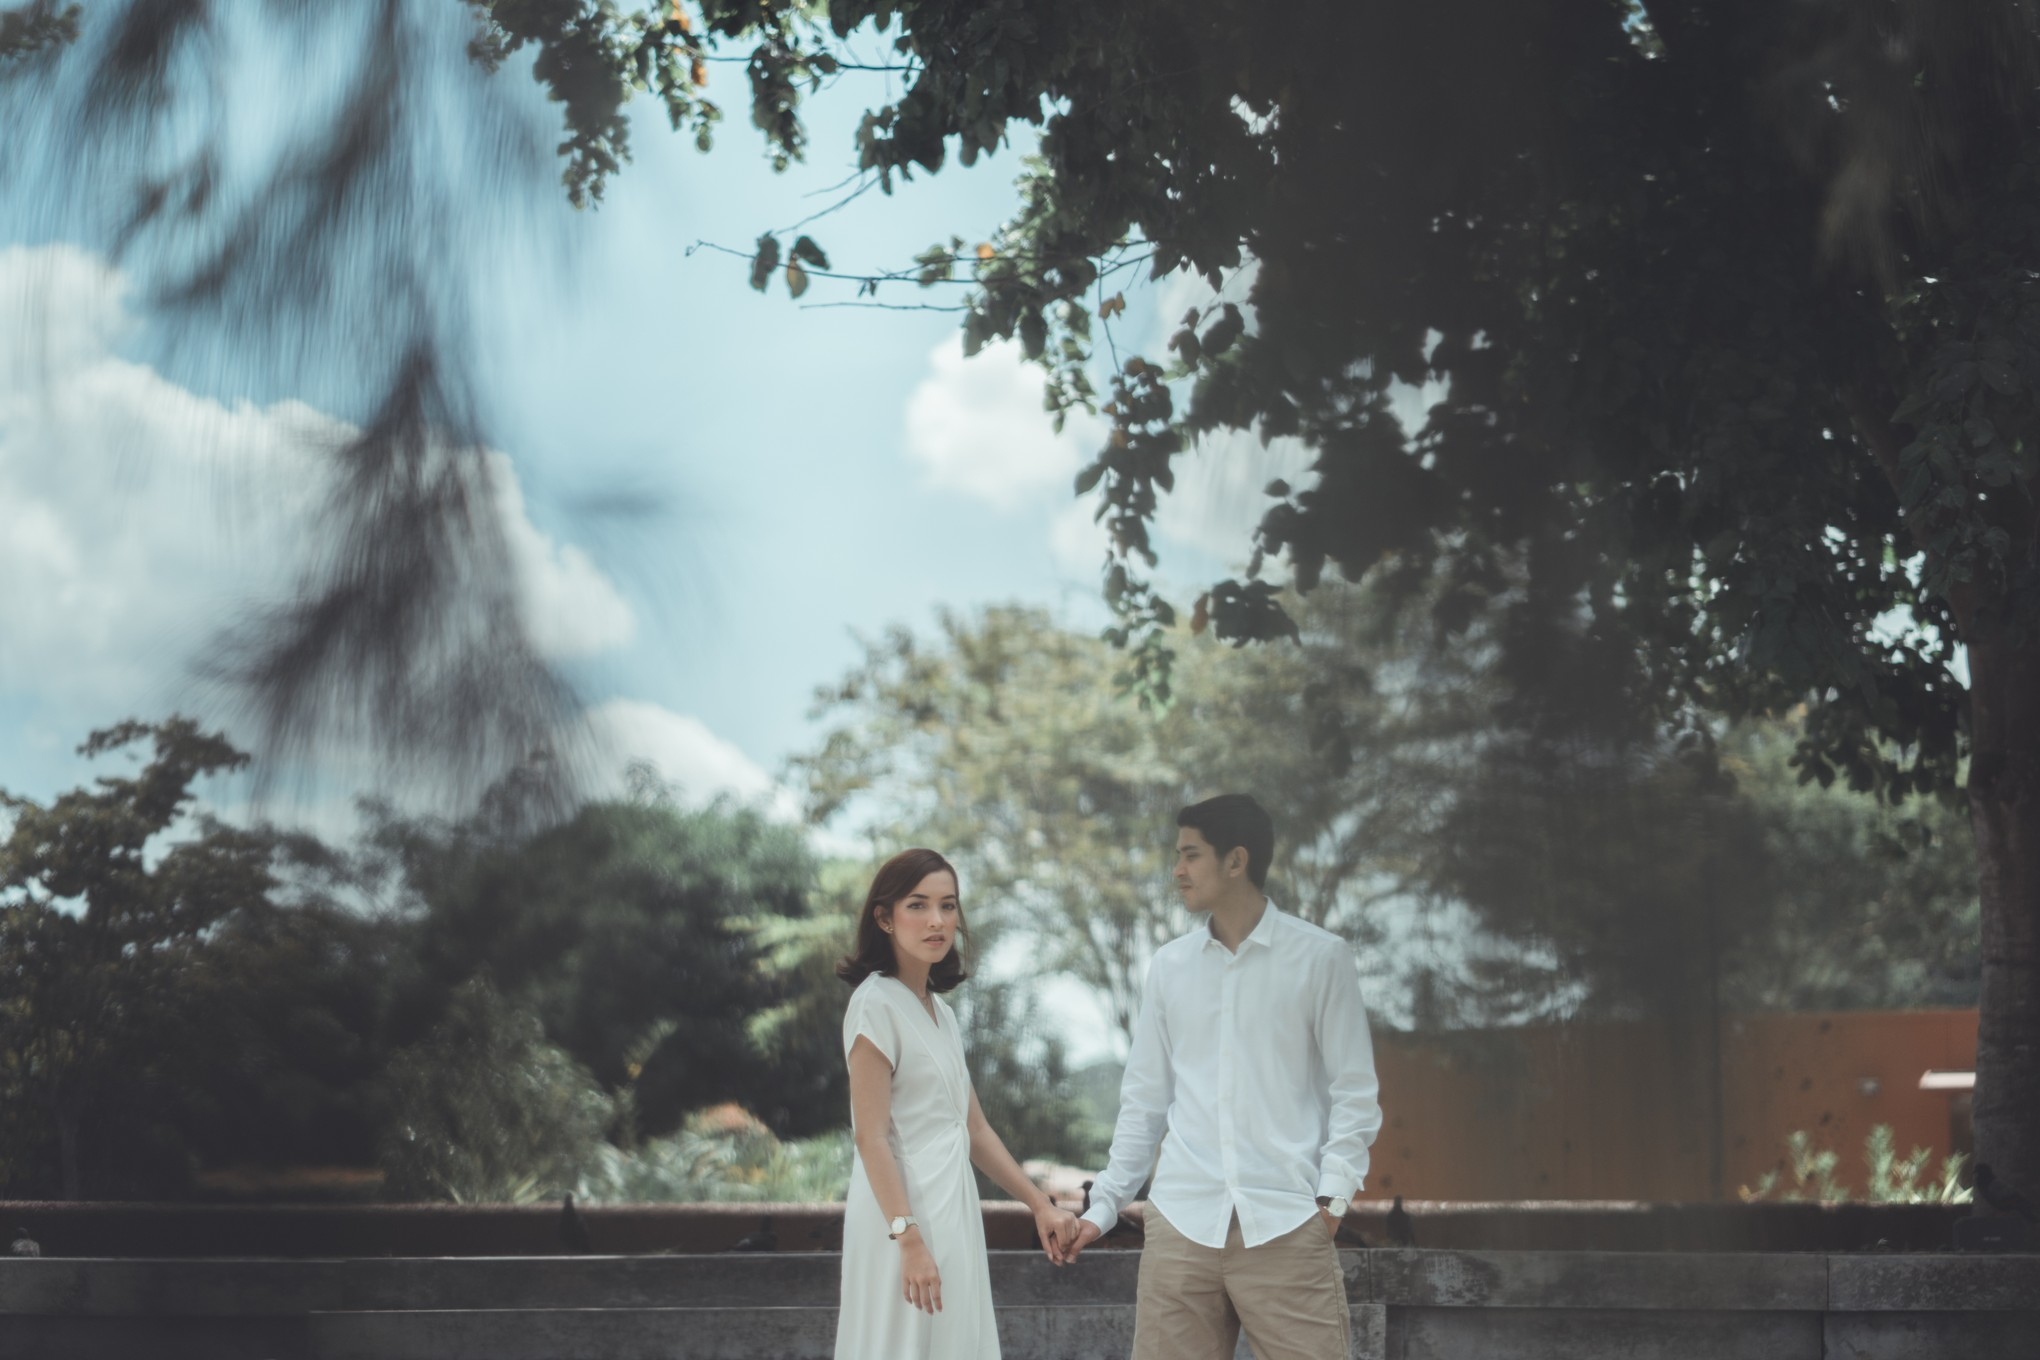 Amorous Pics a couple's amorous day out in the lion city - bridestory blog